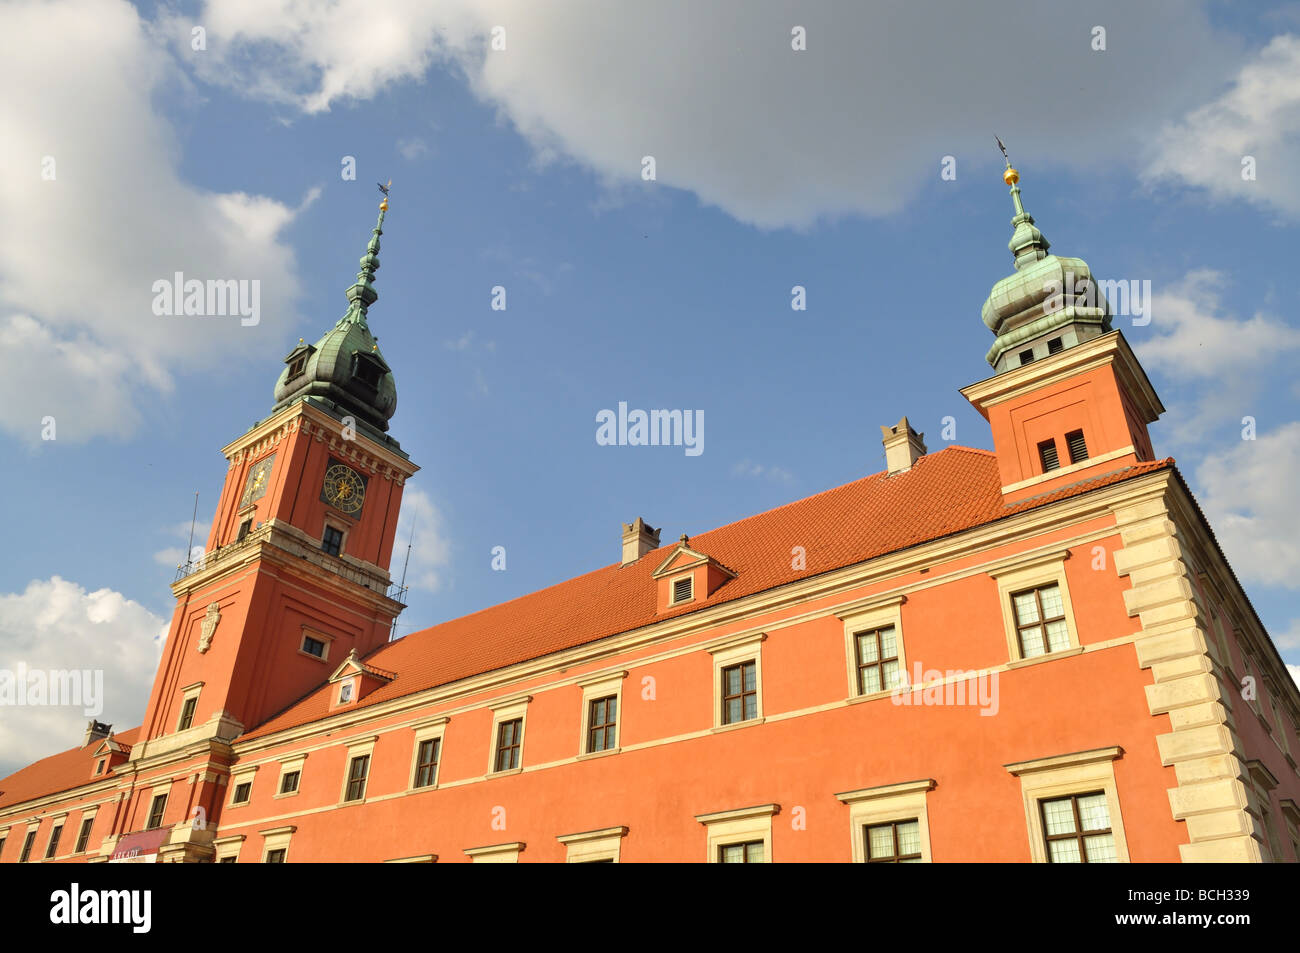 The Royal Castle in Warsaw - Stock Image